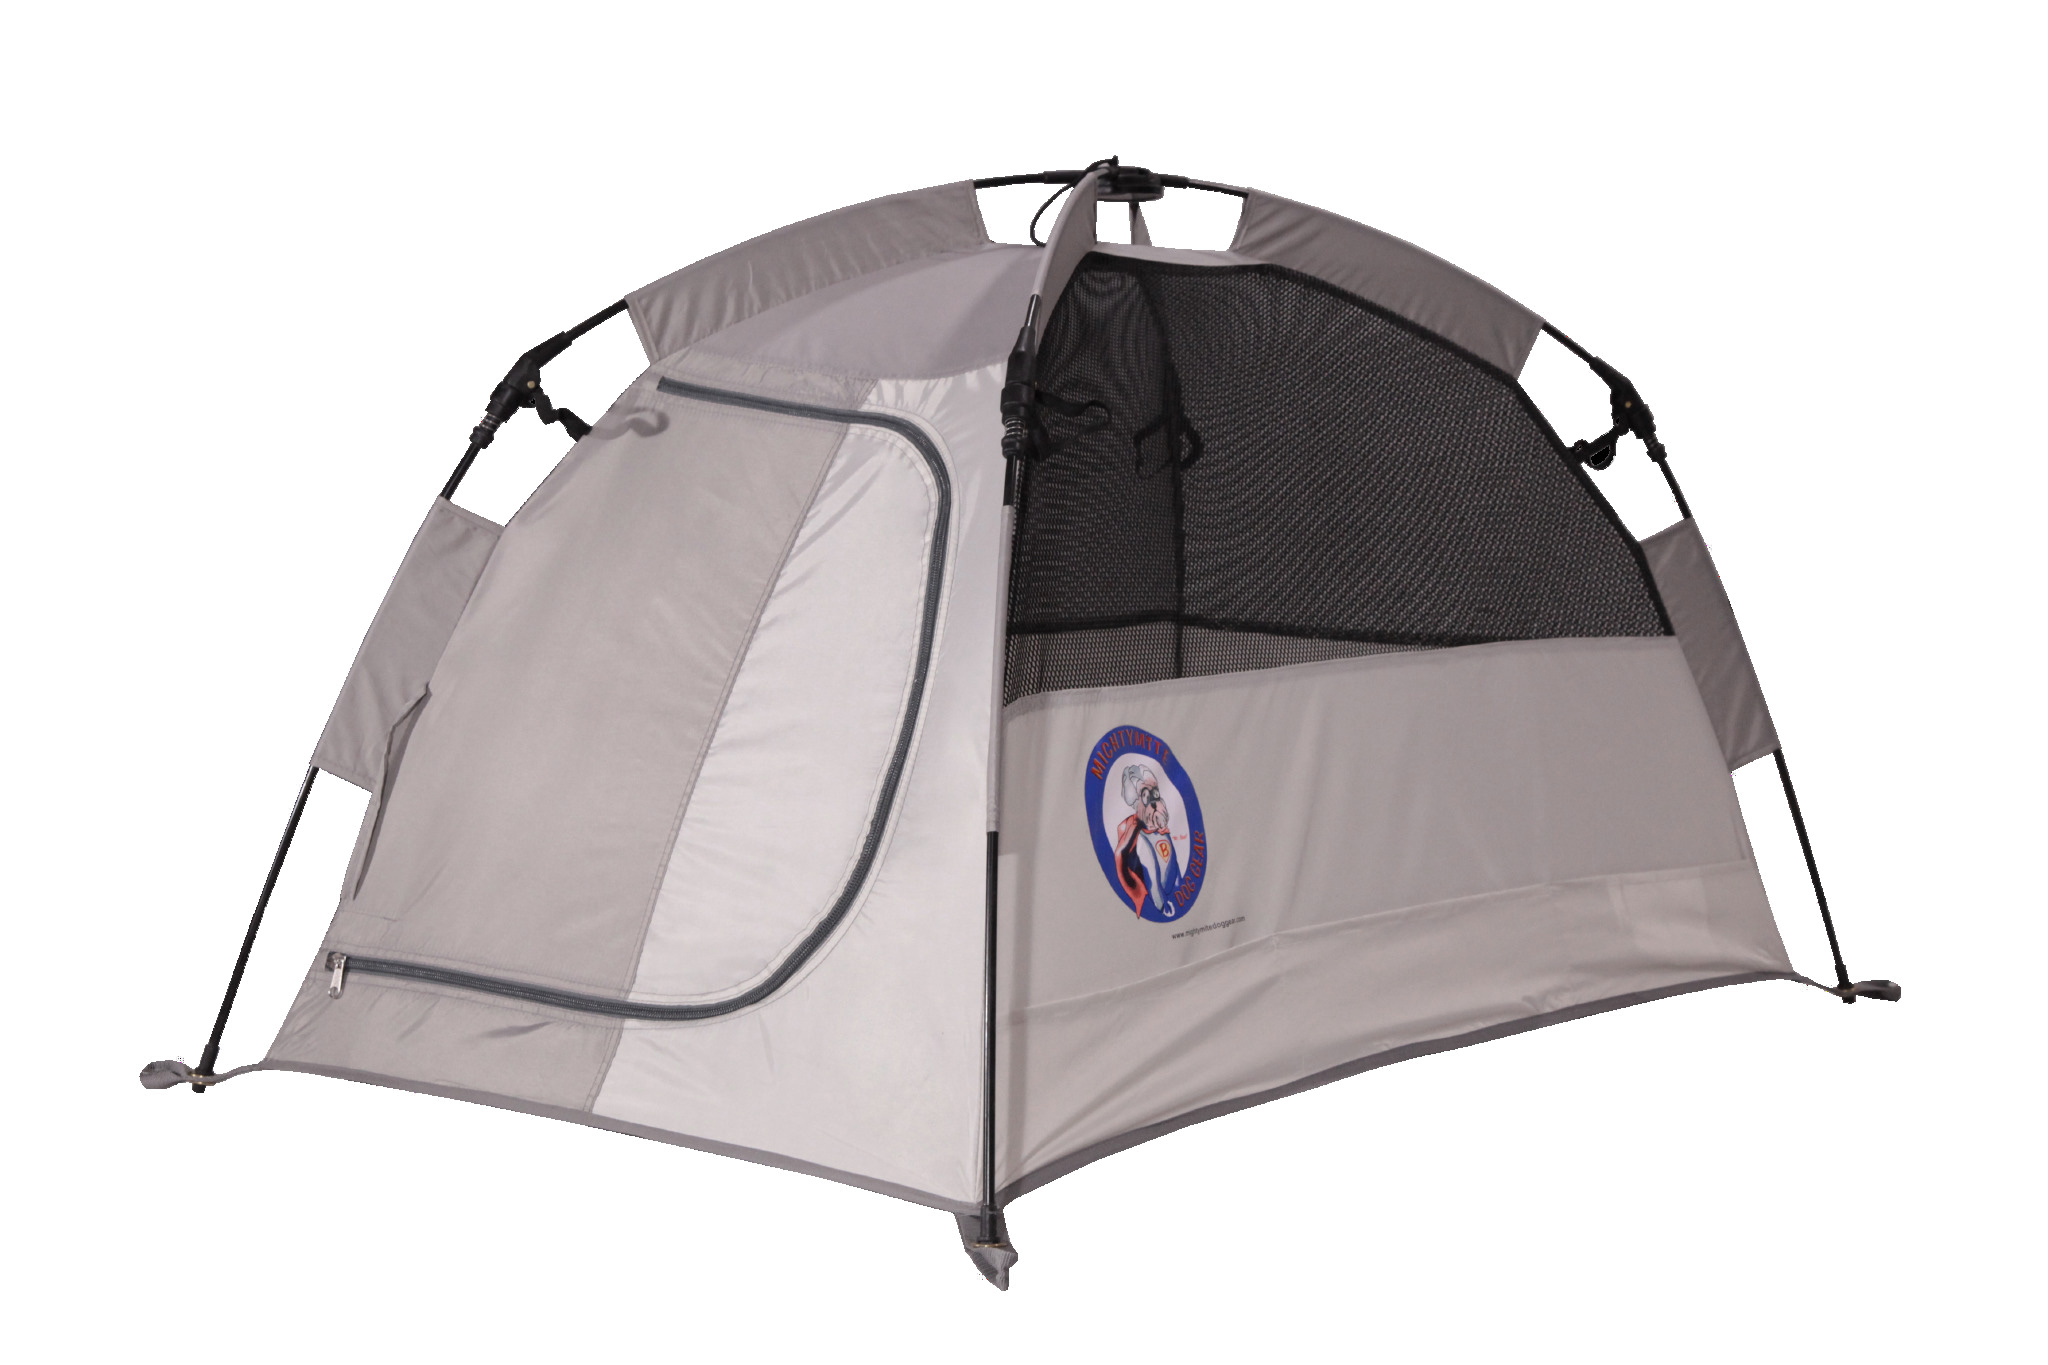 Mighty Mite Dog Tent / Soft Crate  sc 1 st  Mighty Mite Dog Gear & Dog Tents - Mighty Mite Dog Tent